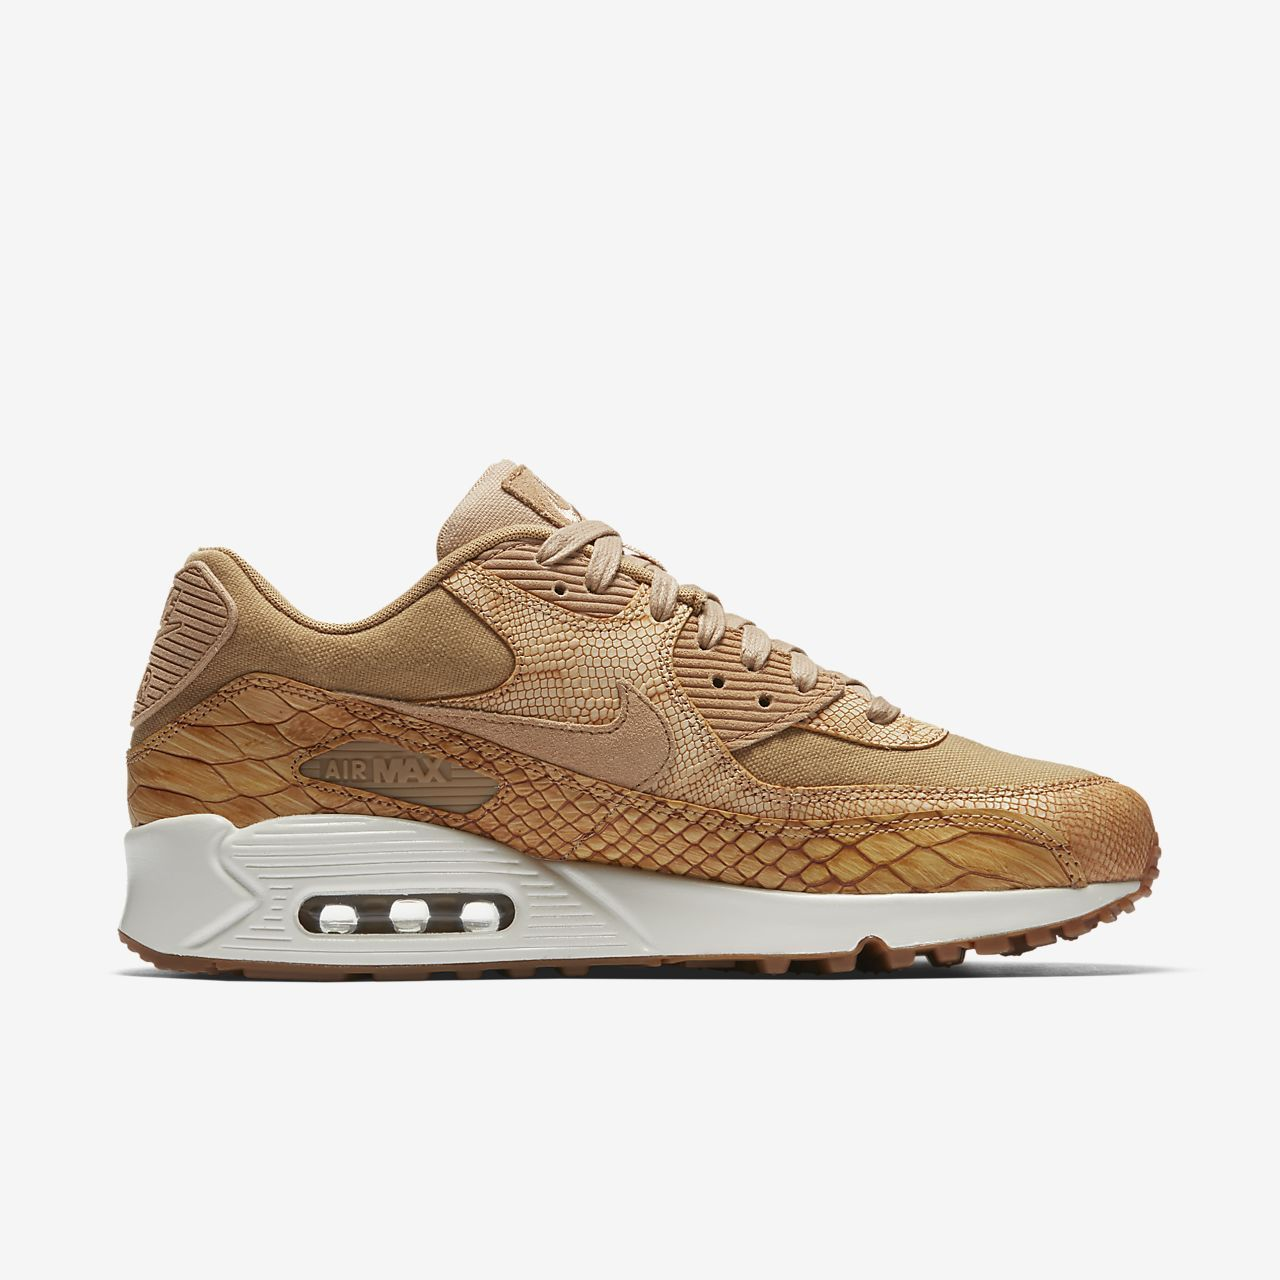 huge discount 93135 2a262  150 Nike Air Max 90 Premium Men s Shoe SOLD by NIKE.com The Nike Air Max  90 Premium Men s Shoe elevates the classic design lines of the 1990  original with ...